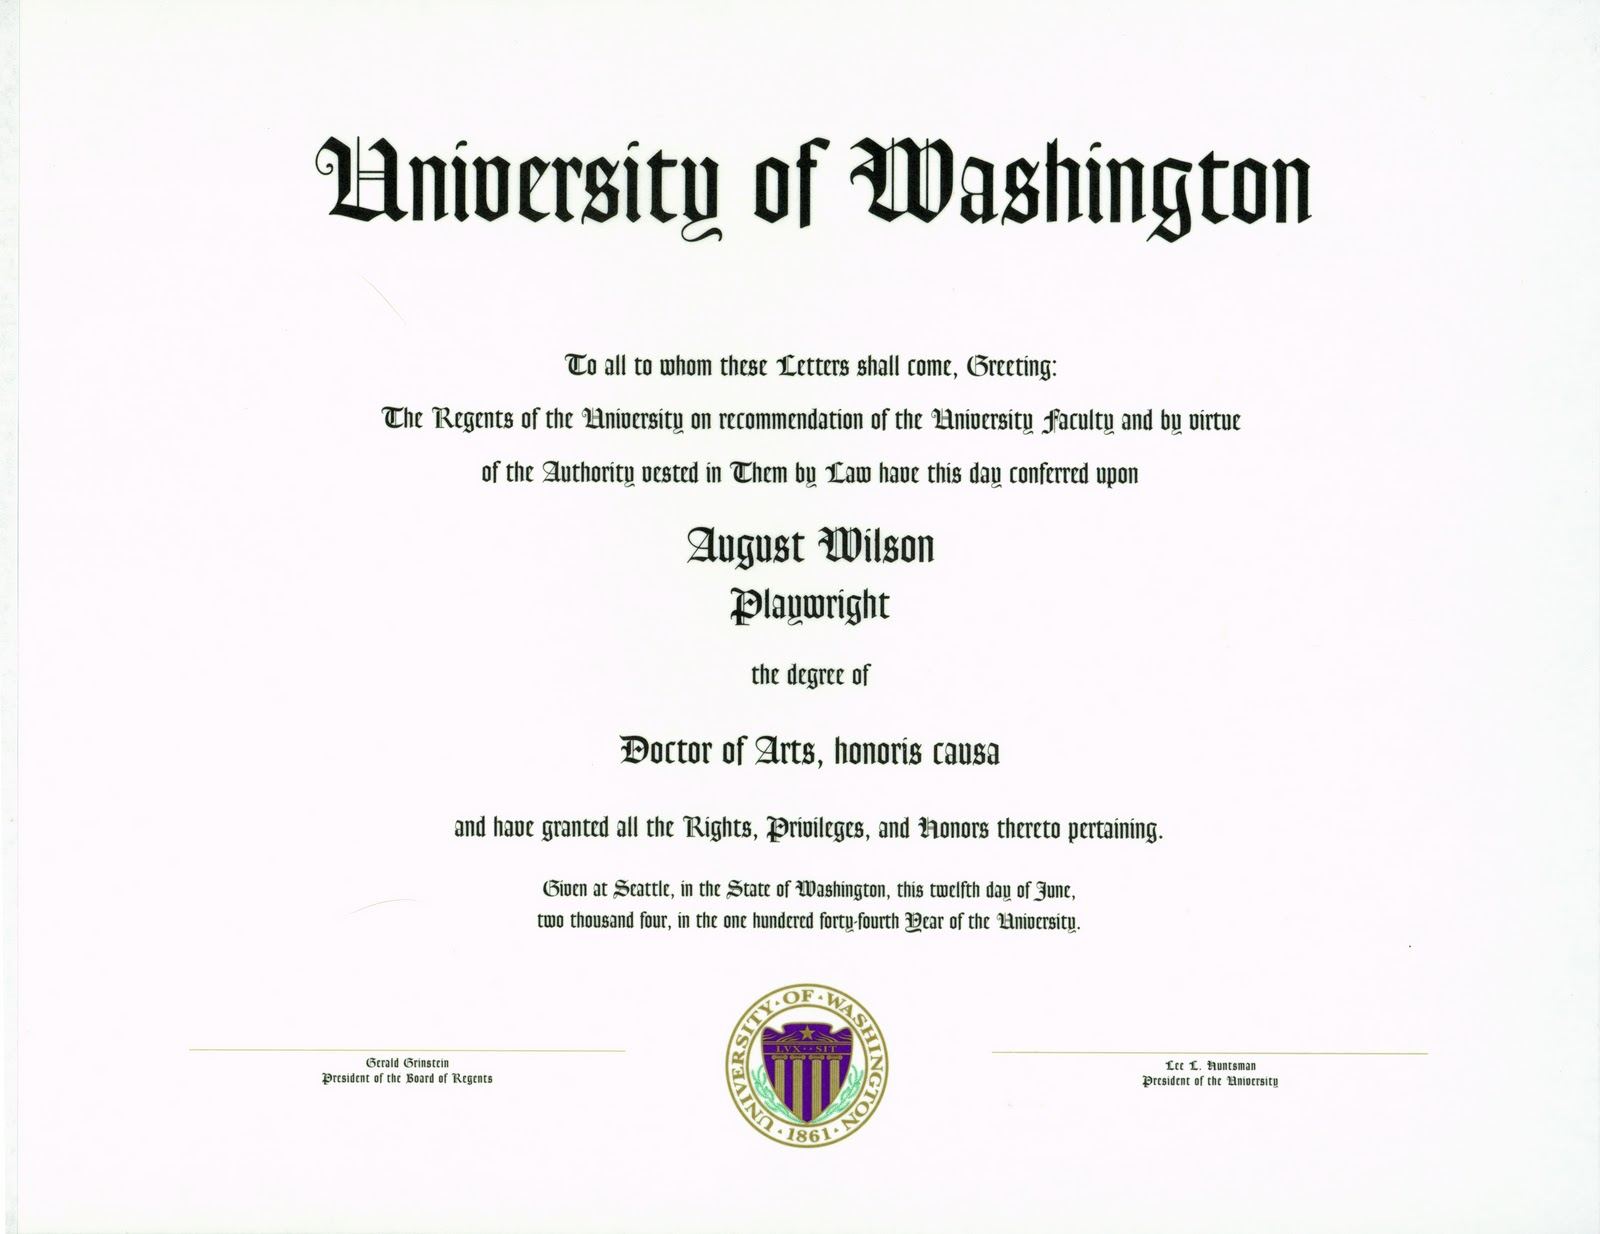 Doctorate degree certificate template choice image templates comfortable playwright template photos resume ideas namanasa doctorate certificate template gallery templates example free alramifo choice xflitez Choice Image